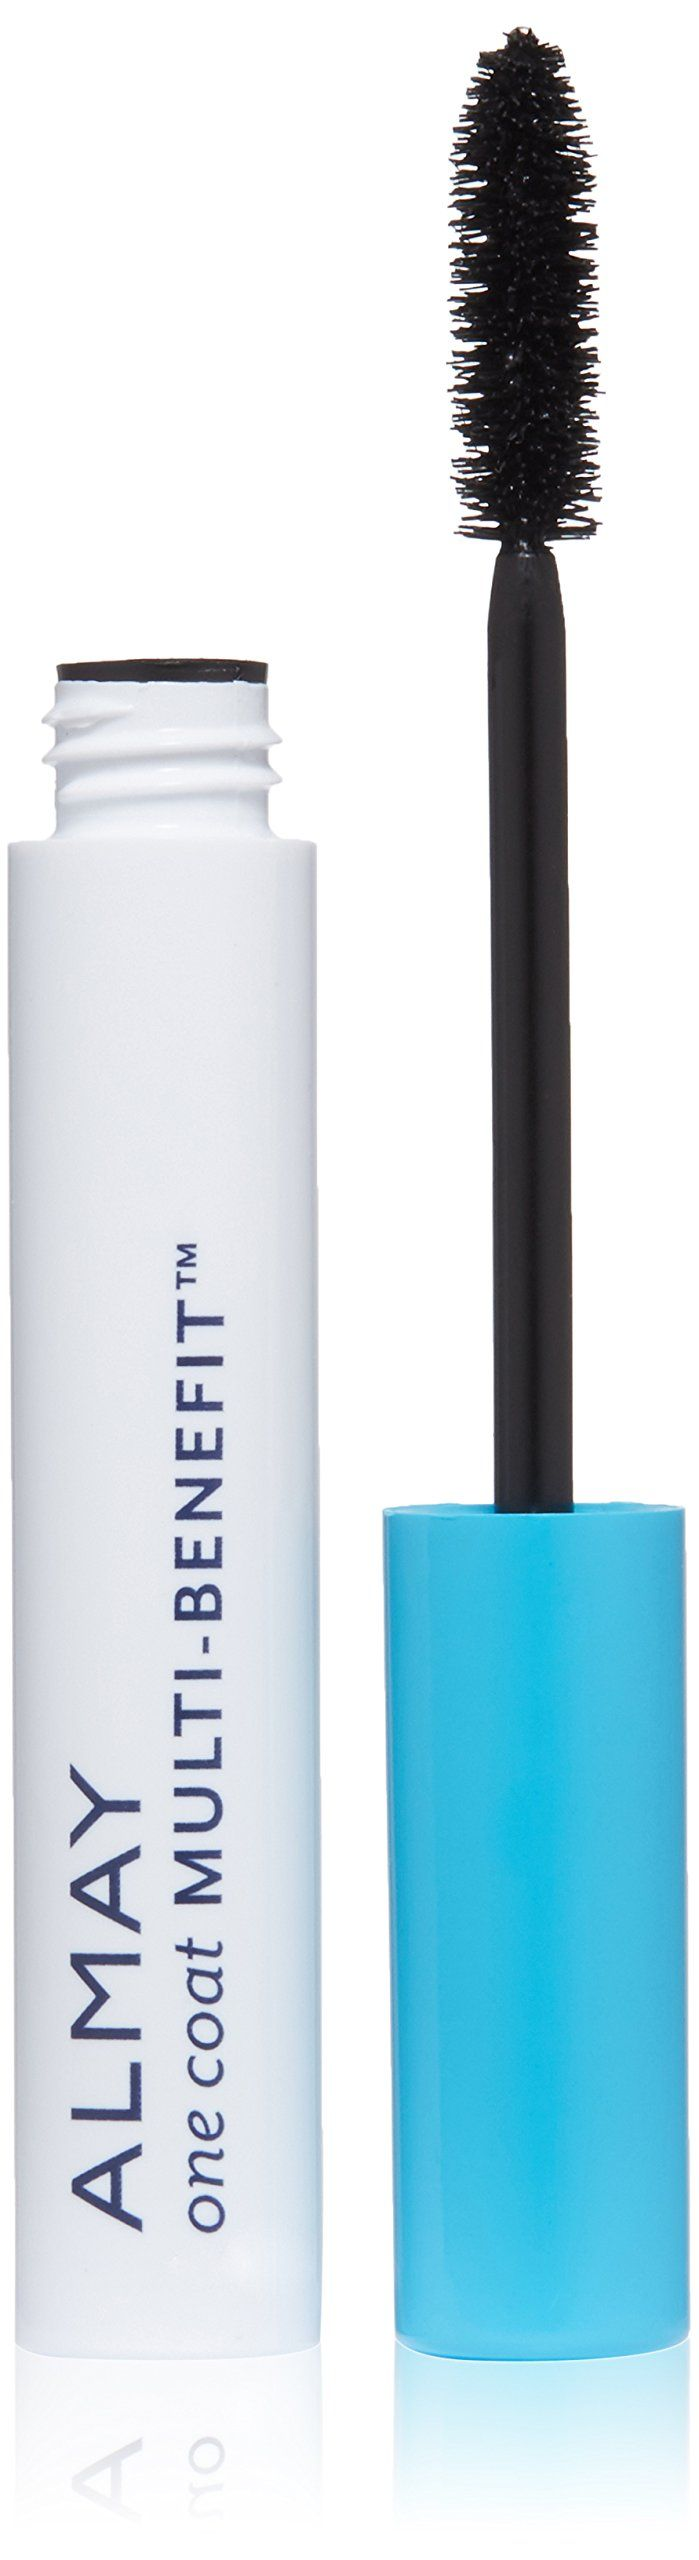 Almay One Coat Multi-Benefit Mascara, Black. #502 Black. Multi-benefit formula for volume, length, definition and nourishes with keratin. Non-irritating formula. Safe for sensitive eyes and contact lens wearers. Ophthalmologist tested. Available in 3 shades.